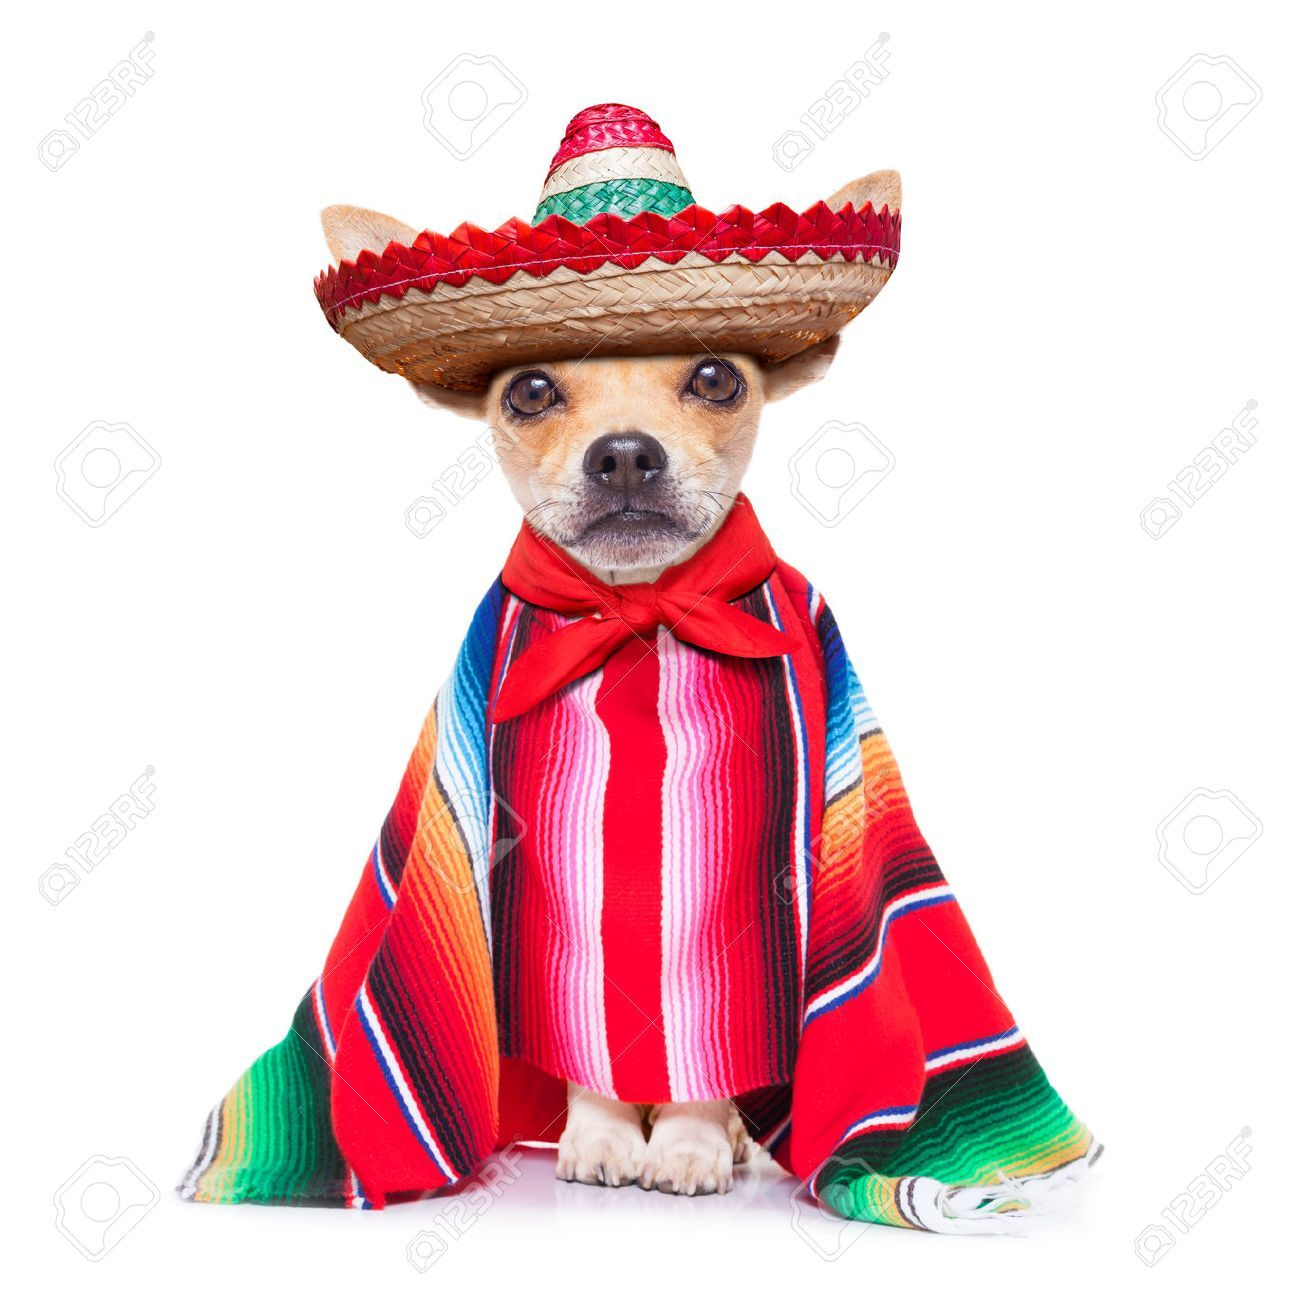 chihuahua dog wearing a sombrero hat and red poncho | Animalitos ...